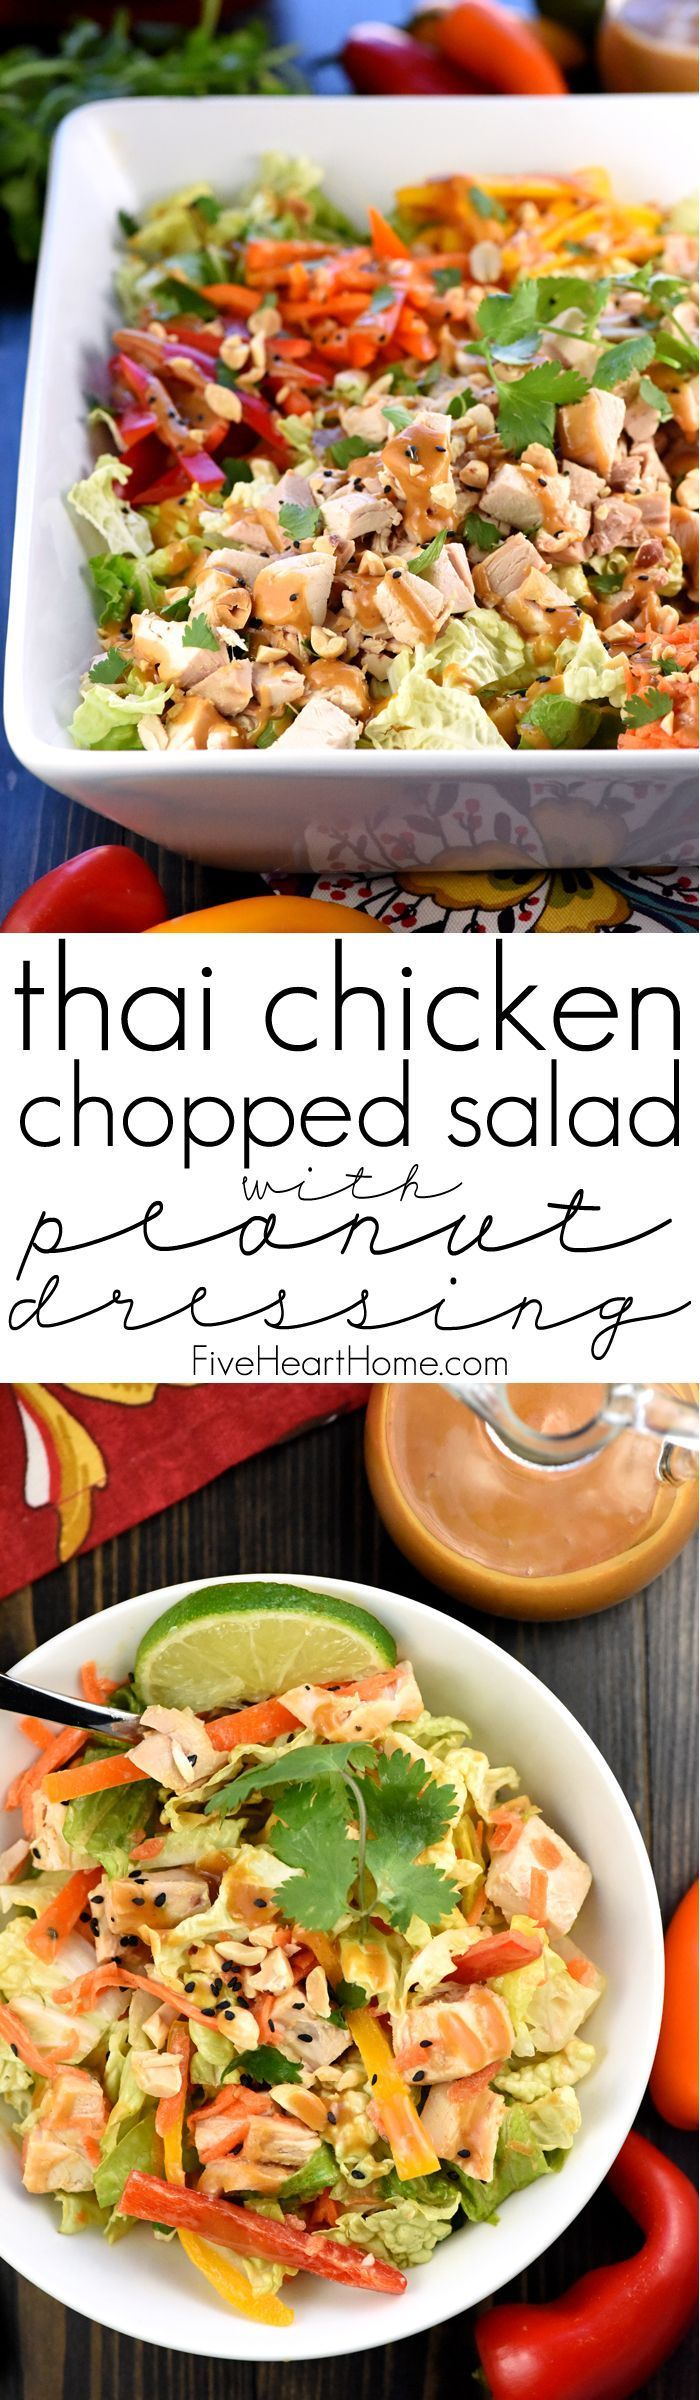 Thai Chicken Chopped Salad with Peanut Dressing ~ exploding with the contrasting flavors and textures of crunchy Napa cabbage, juicy chicken, colorful peppers, sweet carrots, salty peanuts, and fresh cilantro!